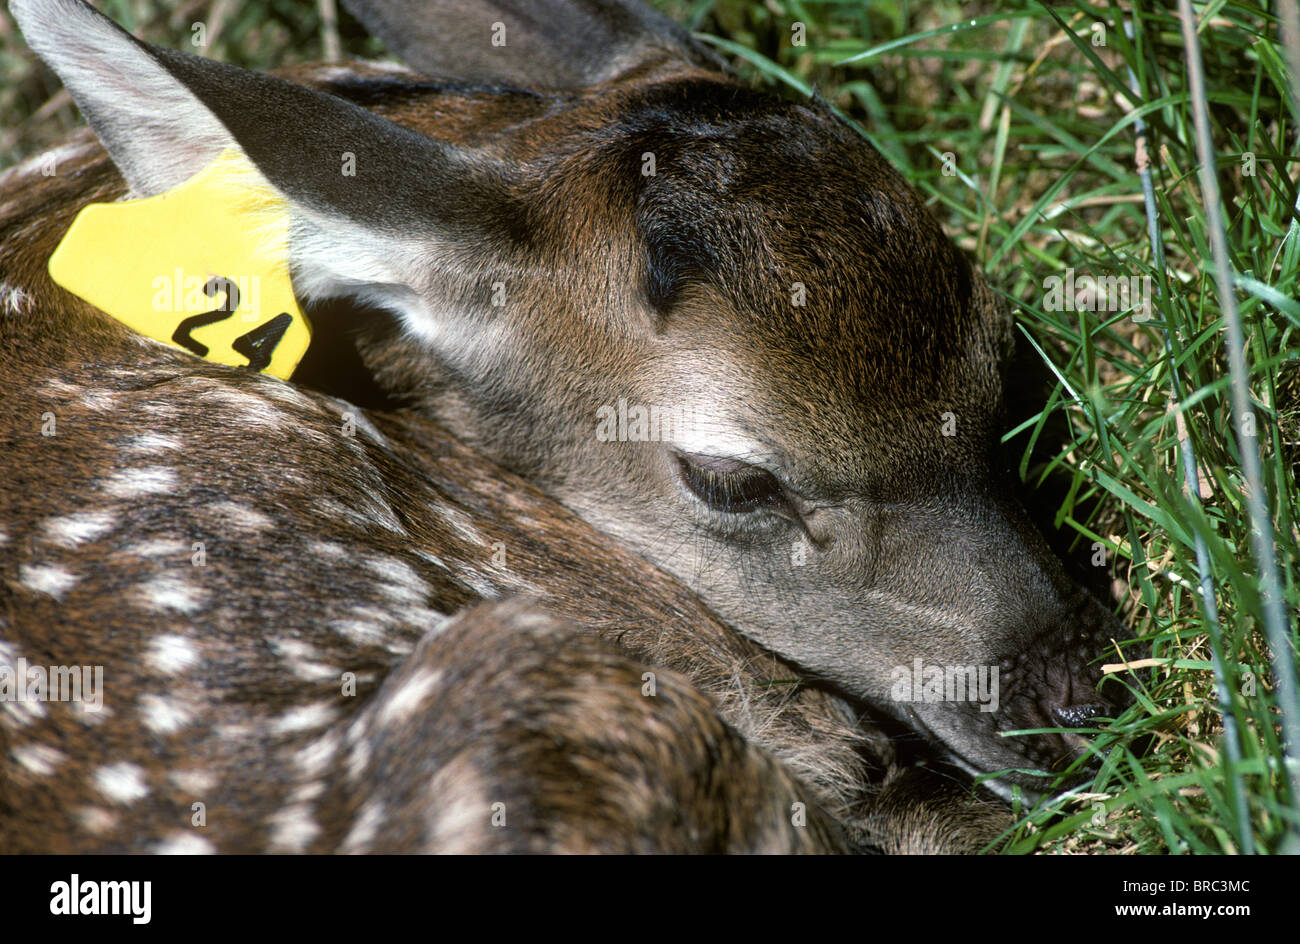 Farmed red deer calf lying waiting for its mother - Stock Image